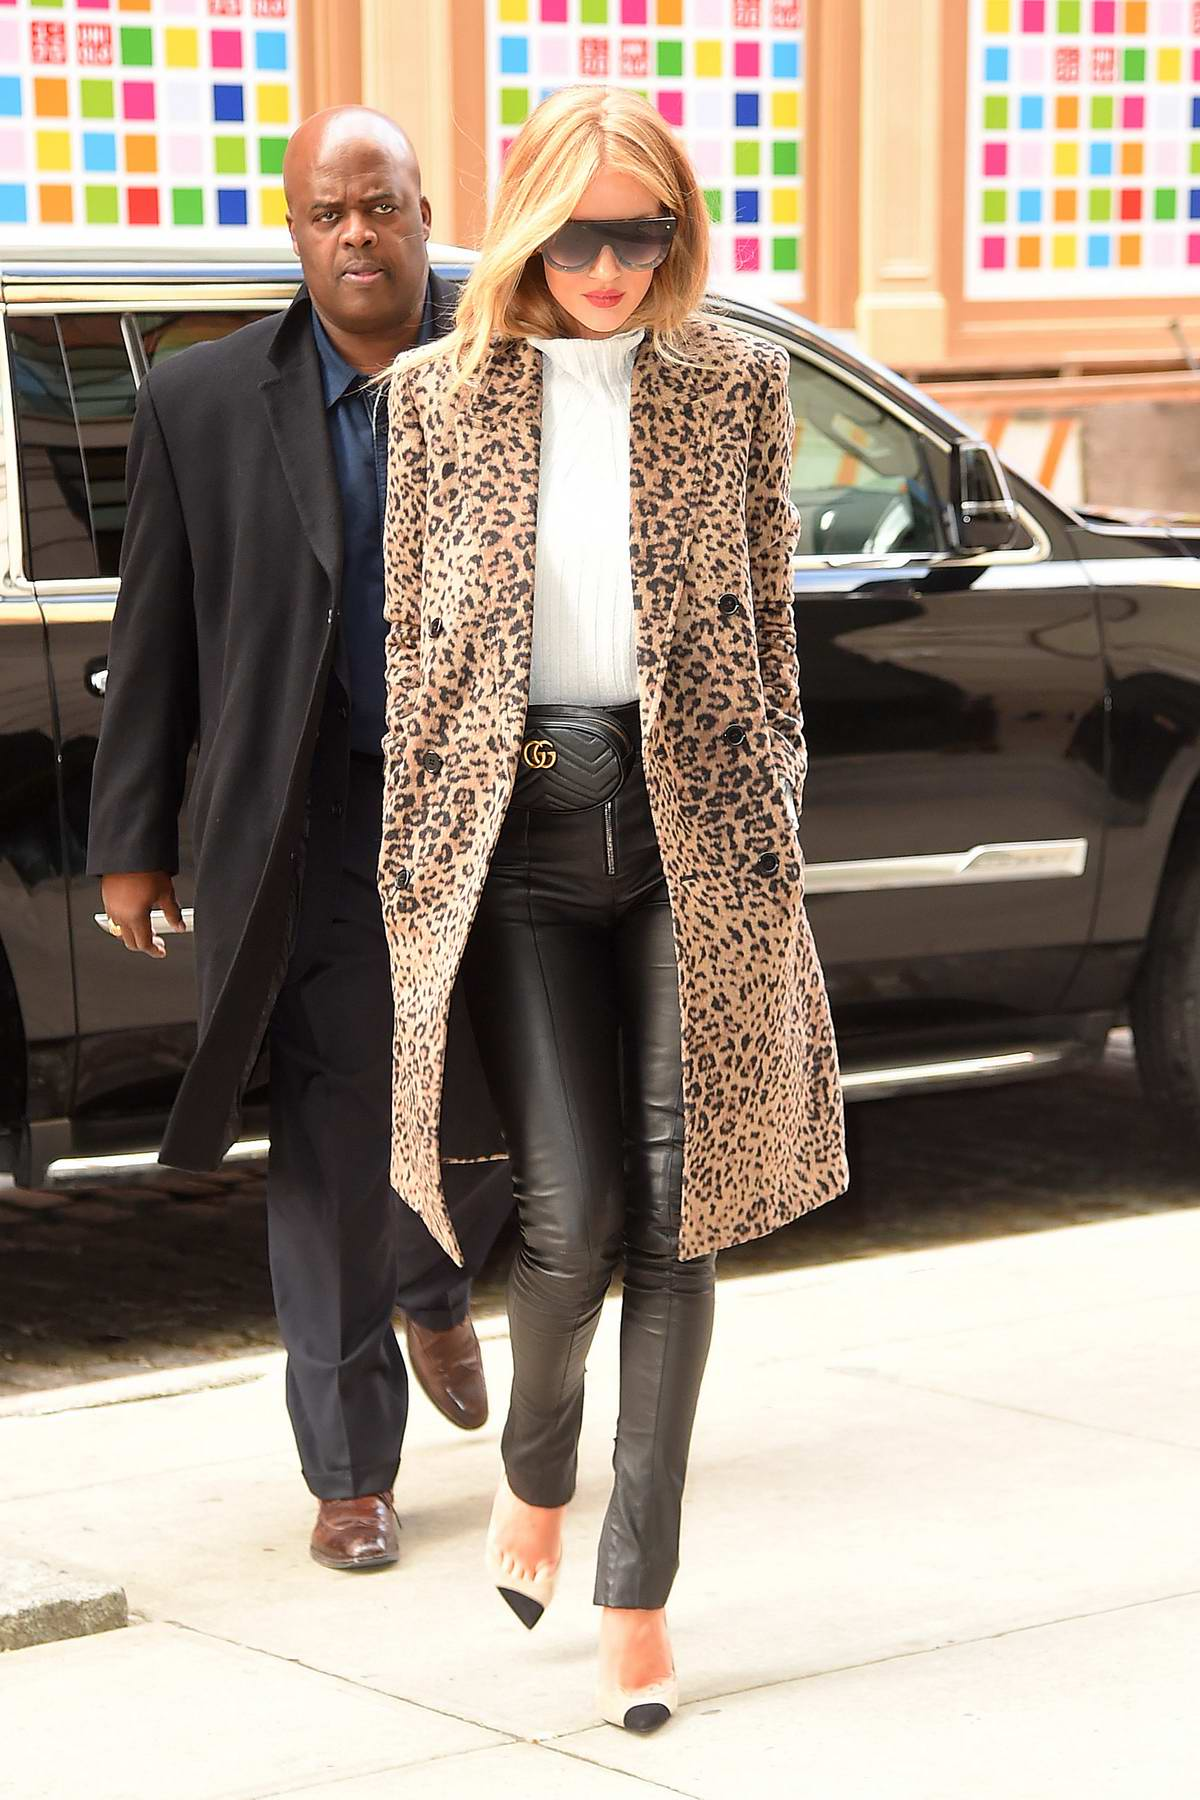 Rosie Huntington-Whiteley spotted in a leopard print trench coat and leather pants while out in Soho, New York City